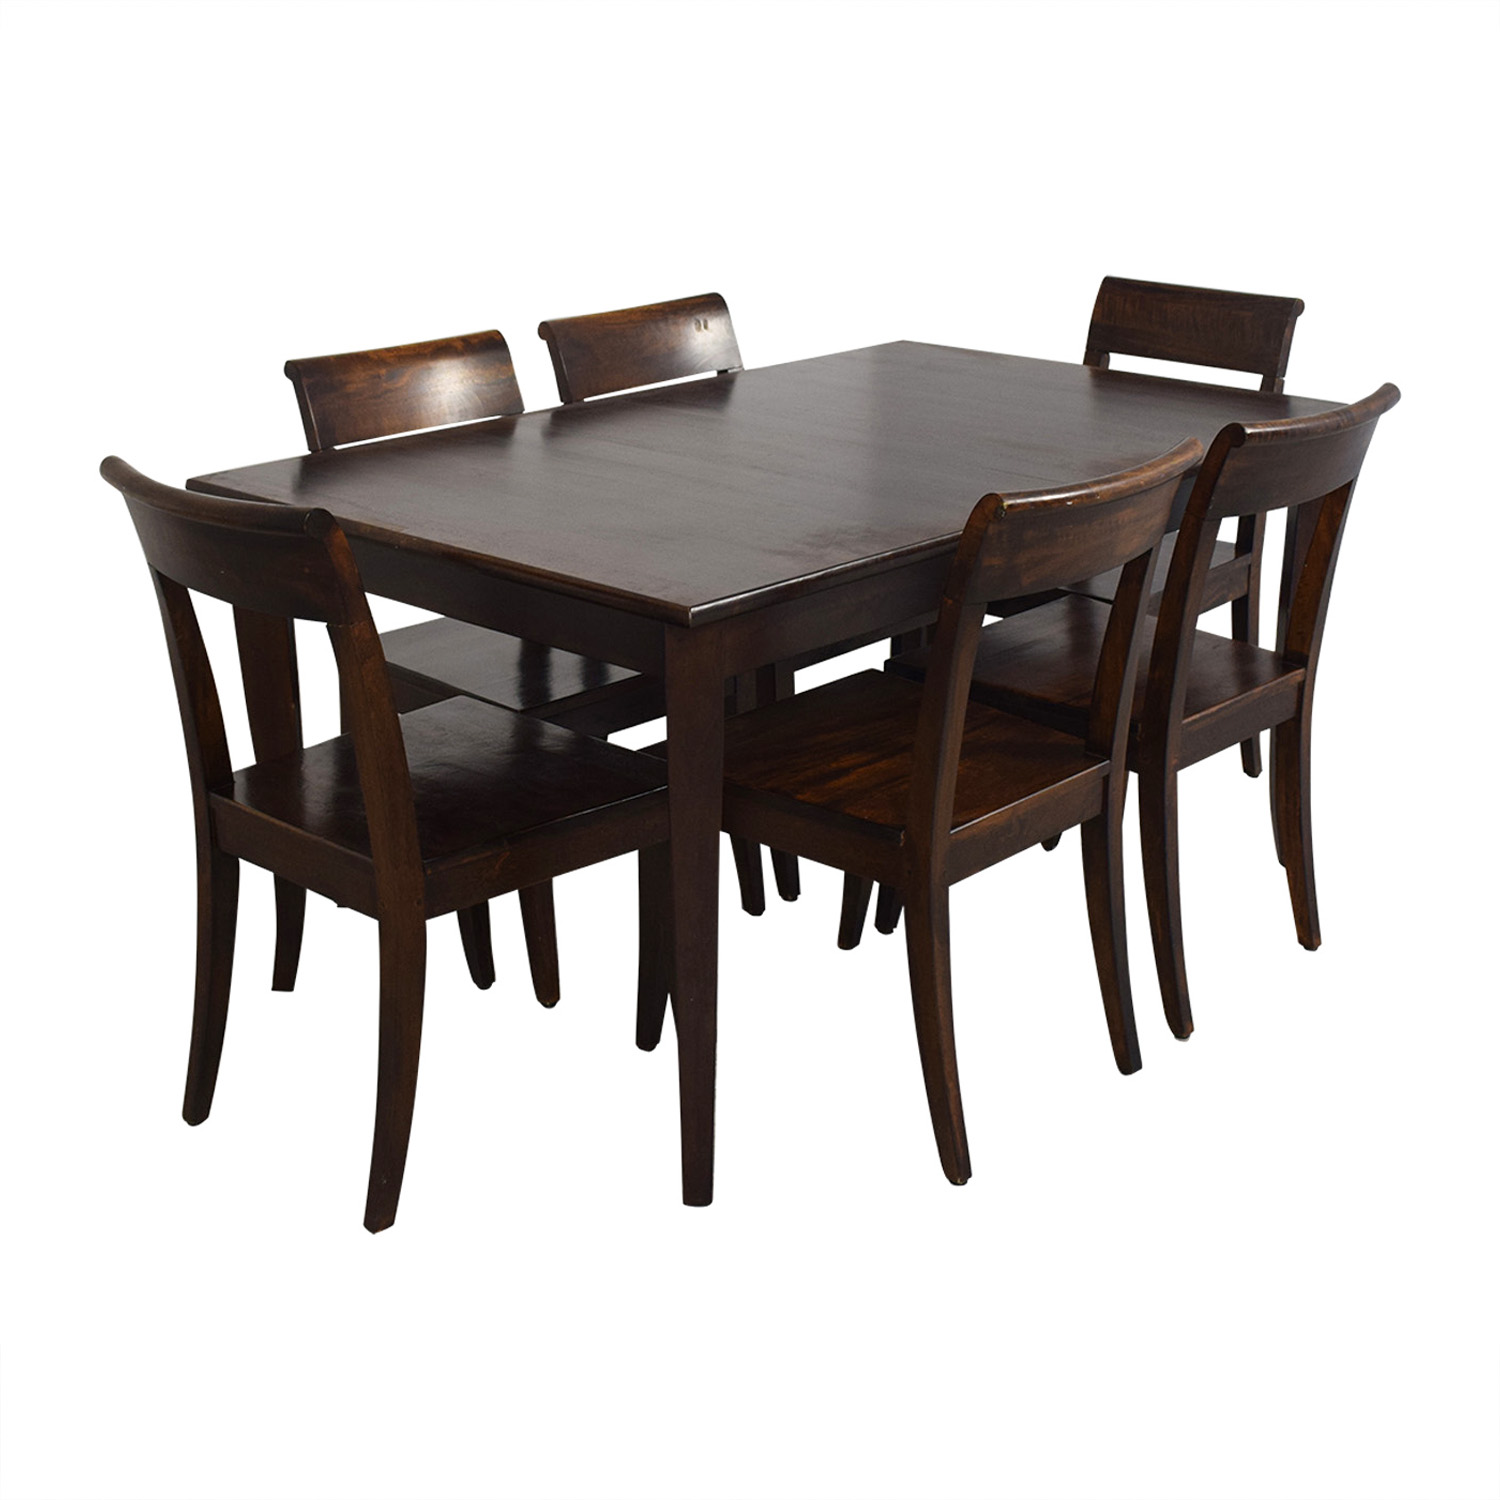 Crate & Barrel Cabria Table Dining Set sale